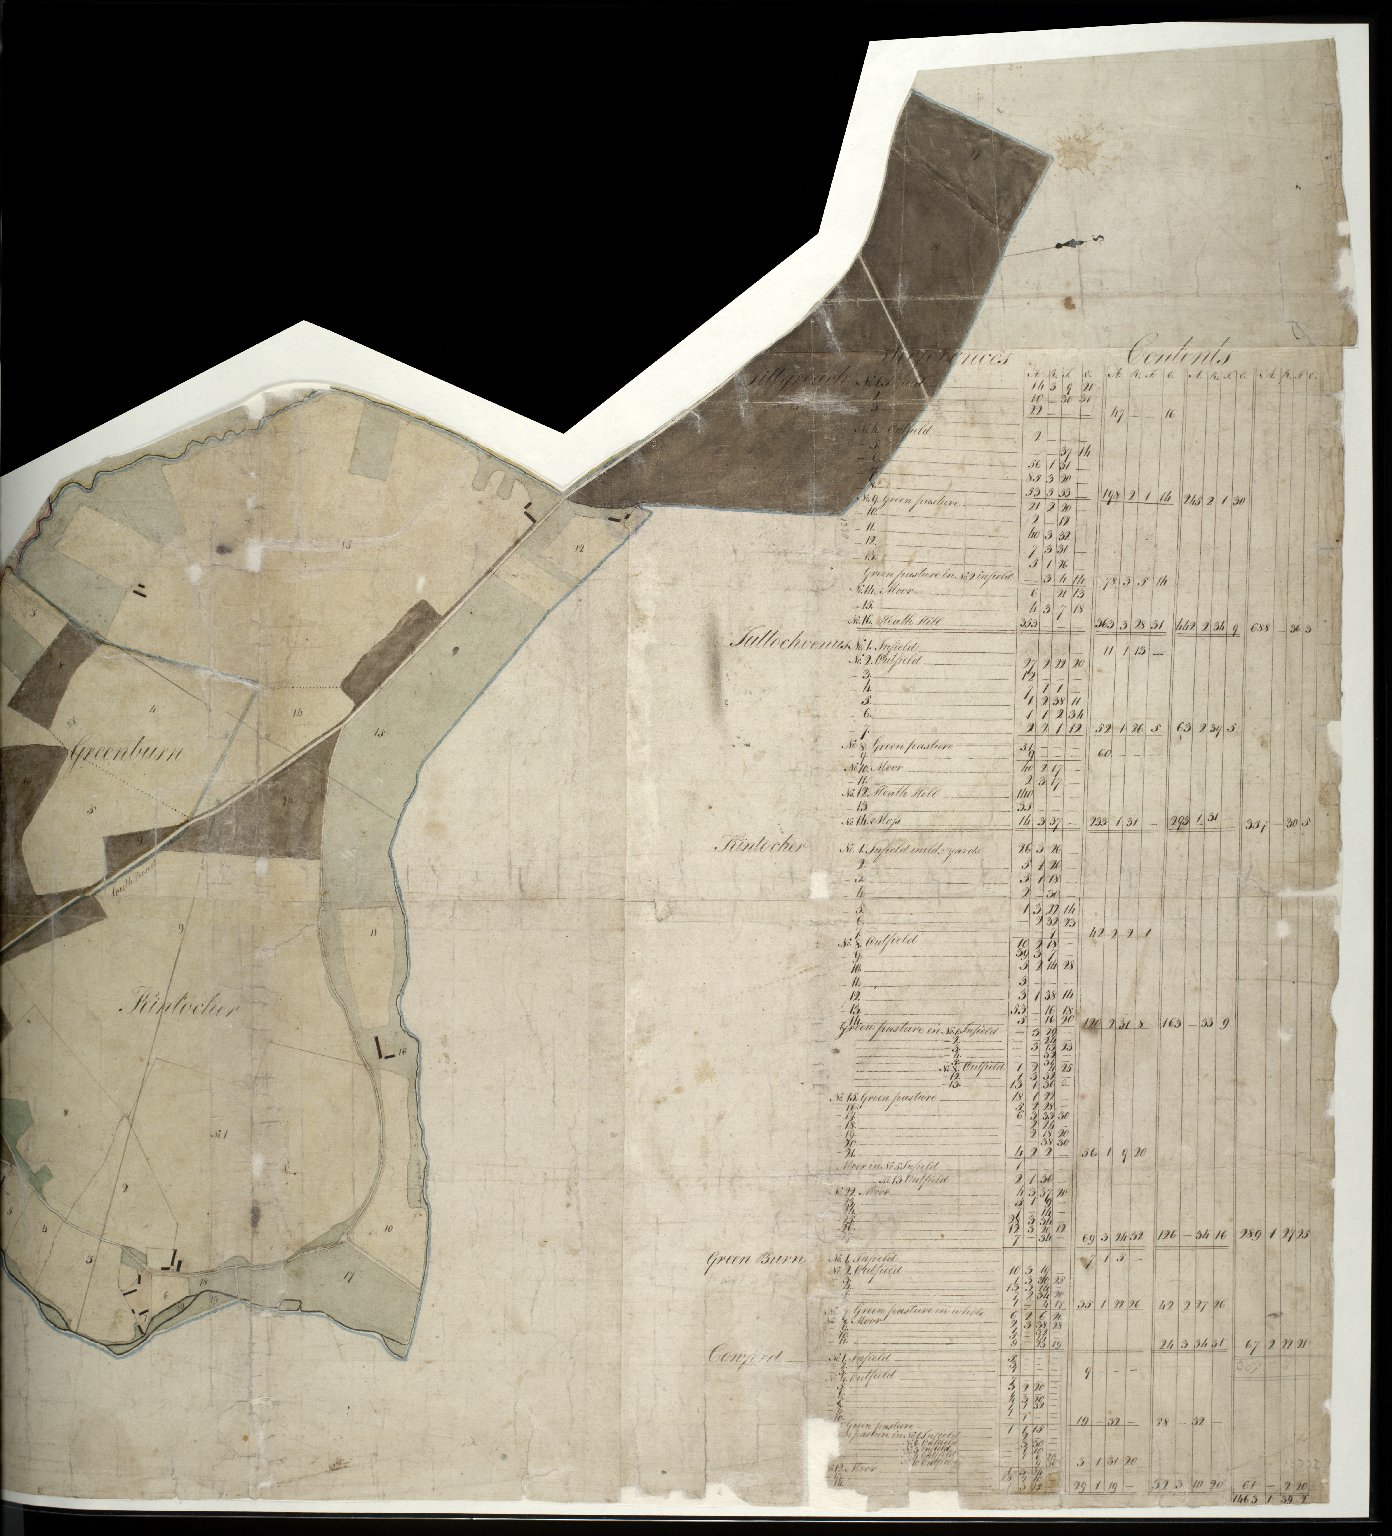 [Map of Tillyreach, Tullochvenus, Kintocher and Greenburn holdings] [1 of 2]